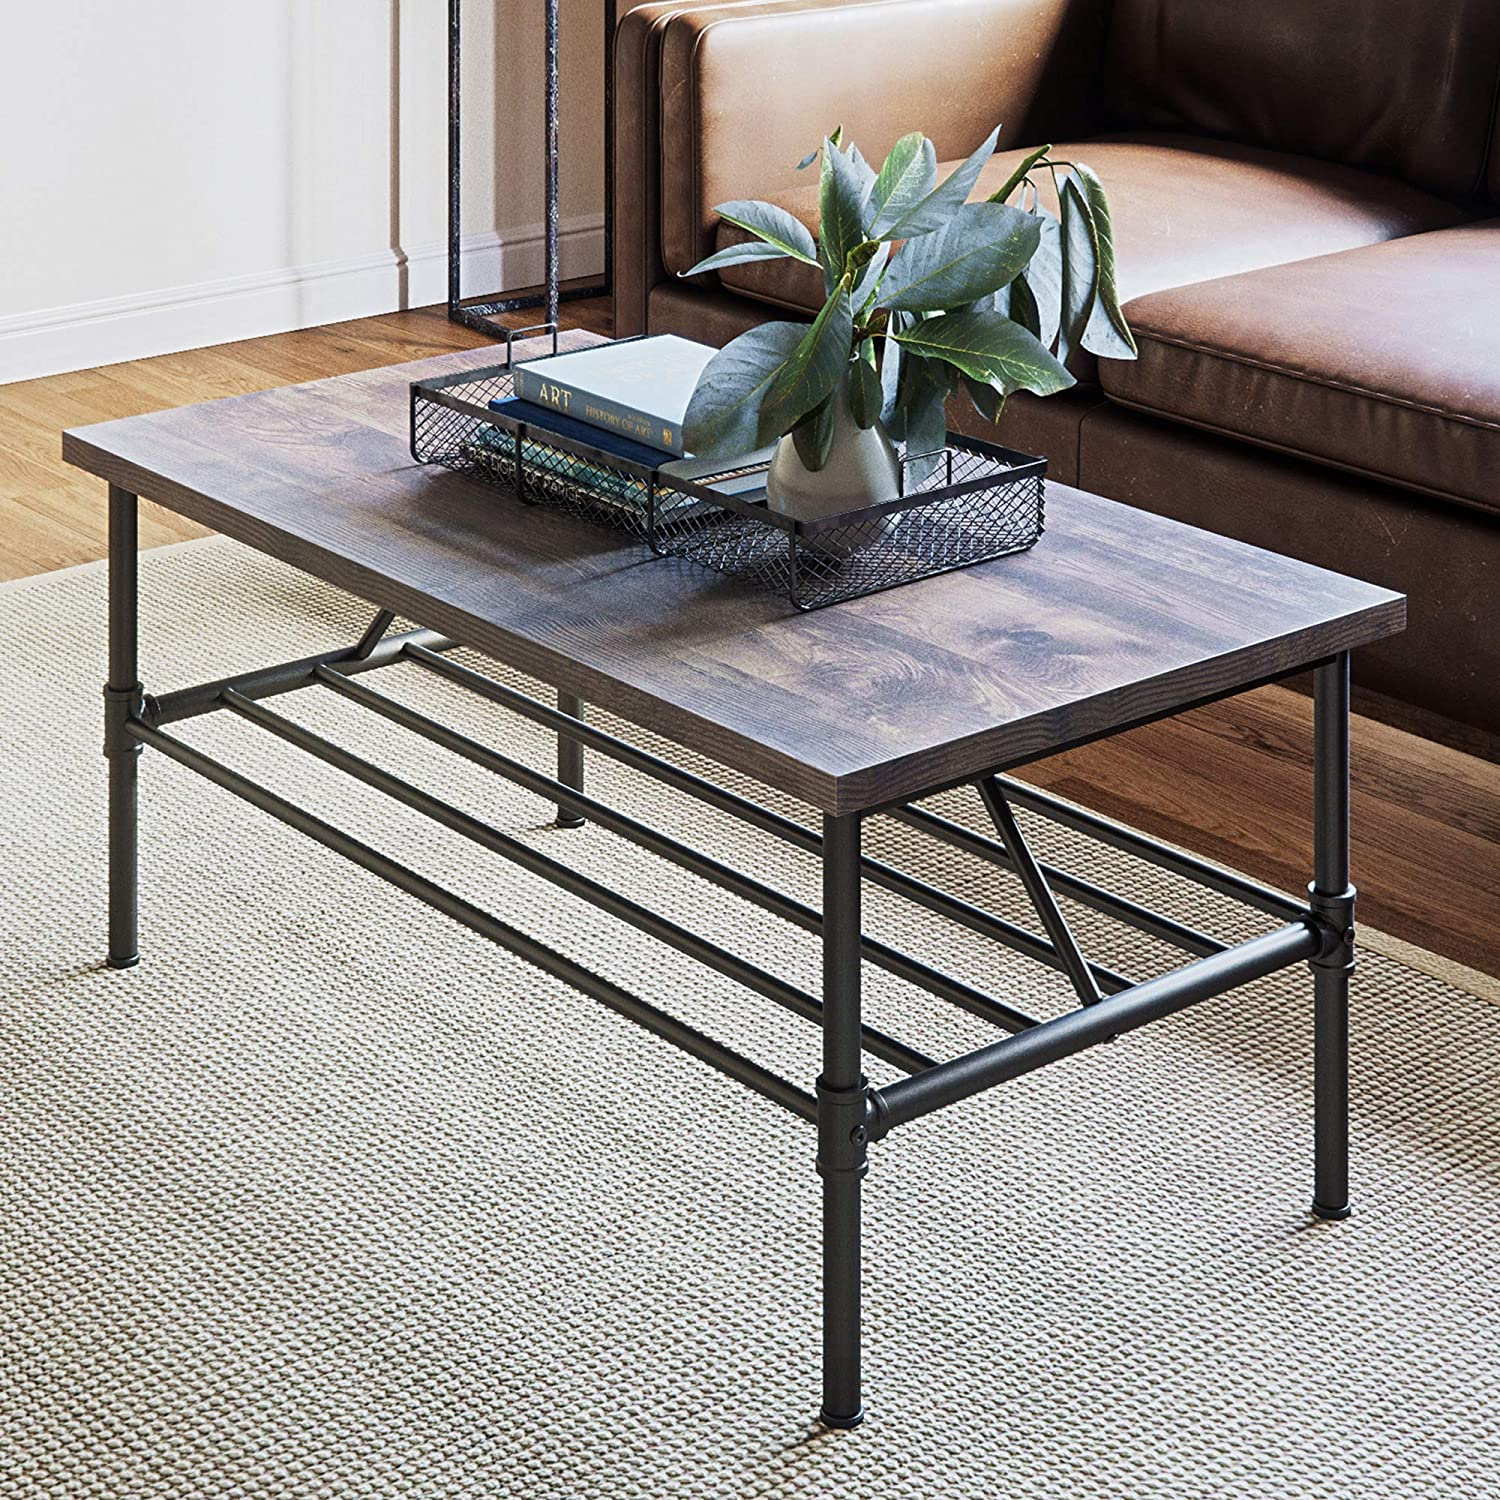 "Amazon.com - Nathan James 31301 Maxx Industrial Pipe Metal and Rustic Wood  Coffee Table 41"", Gray/Black - Tables"